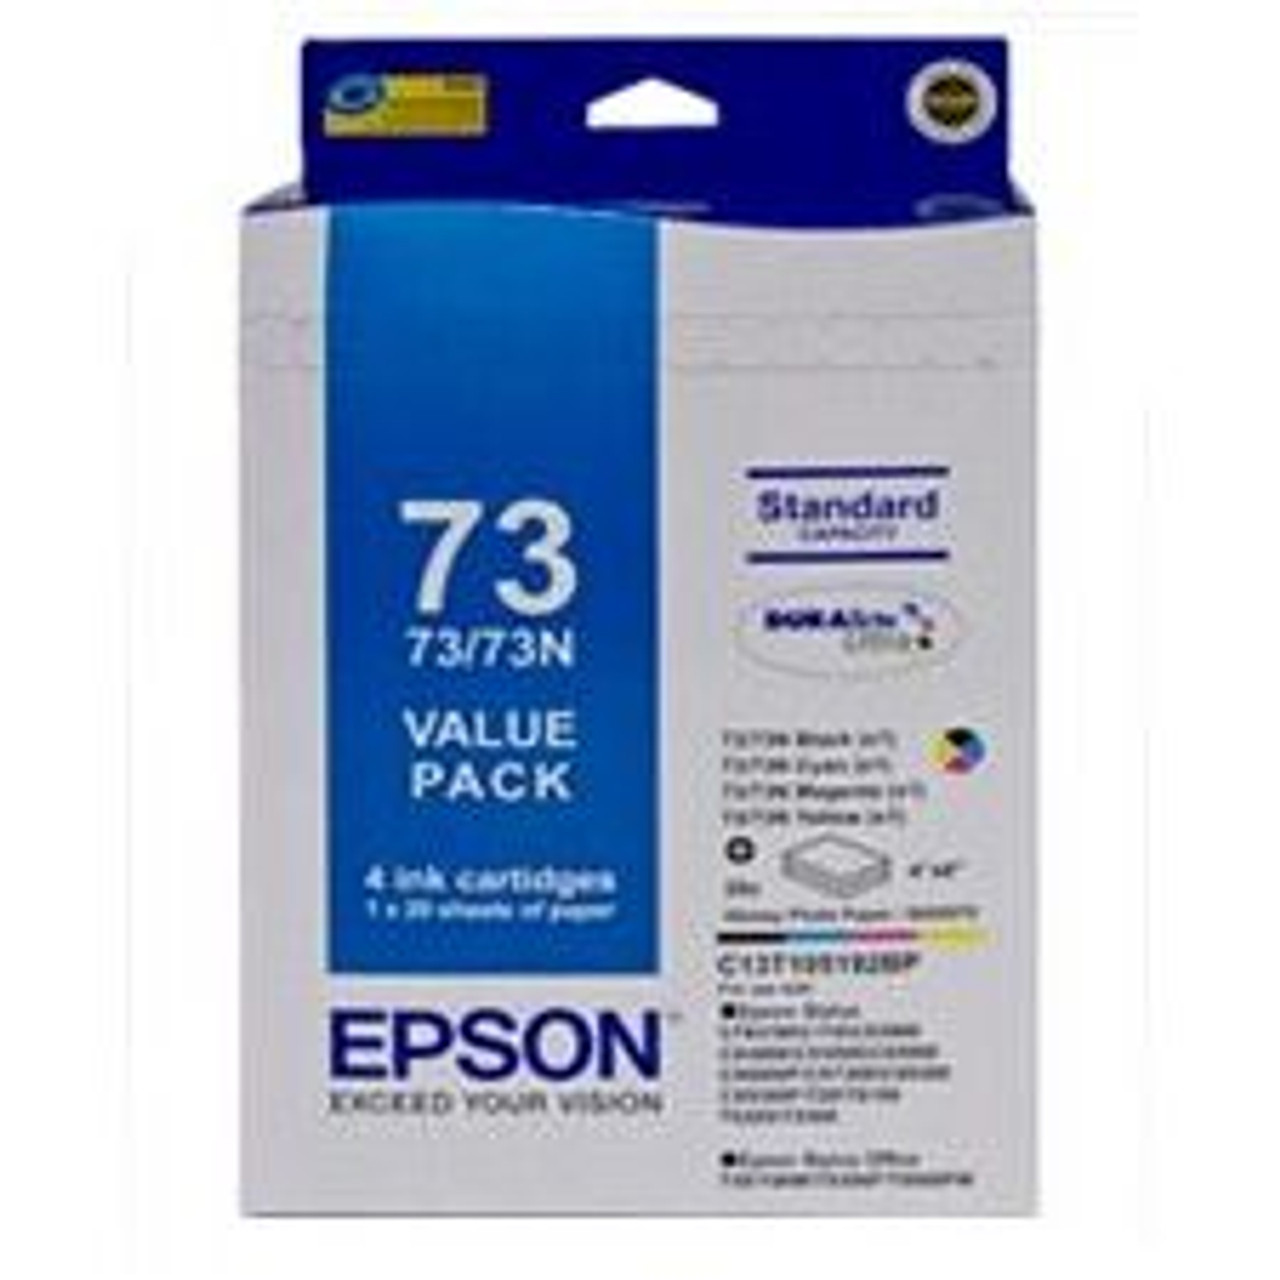 Image for Epson 73/73N Value Pack Cartridge Paper Kit (T105192BP) CX Computer Superstore